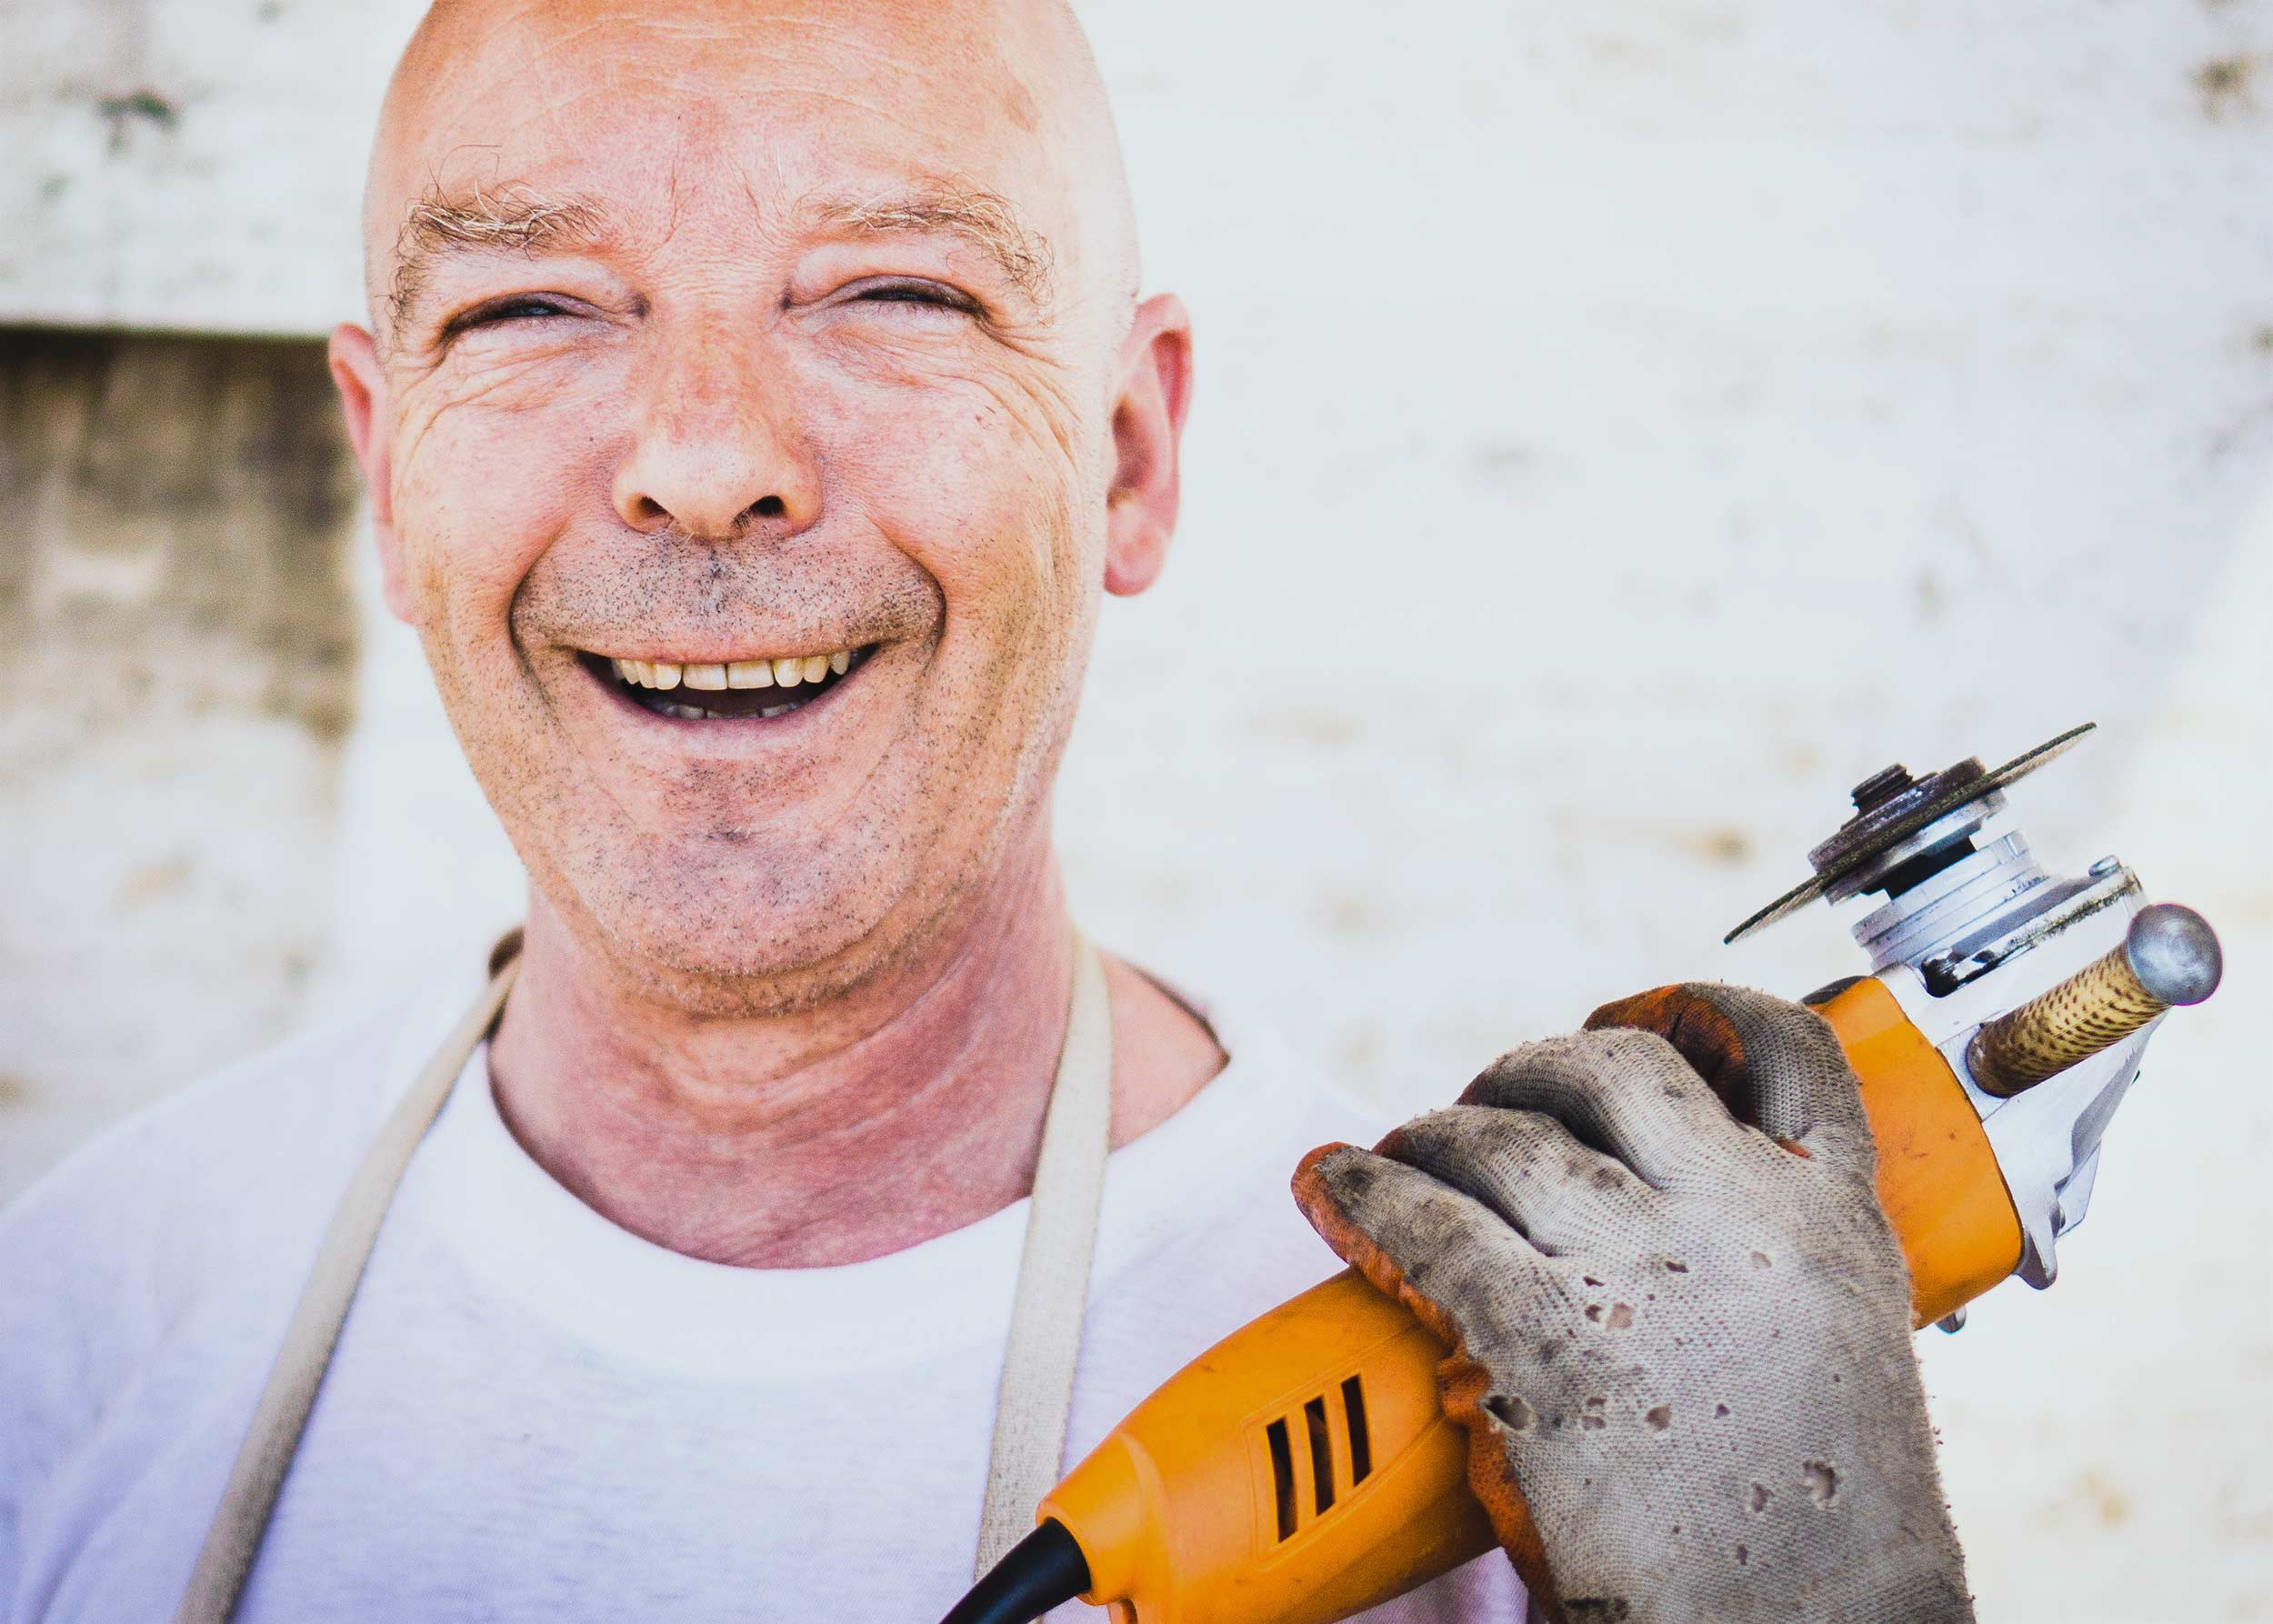 A smiling worker holding a power tool